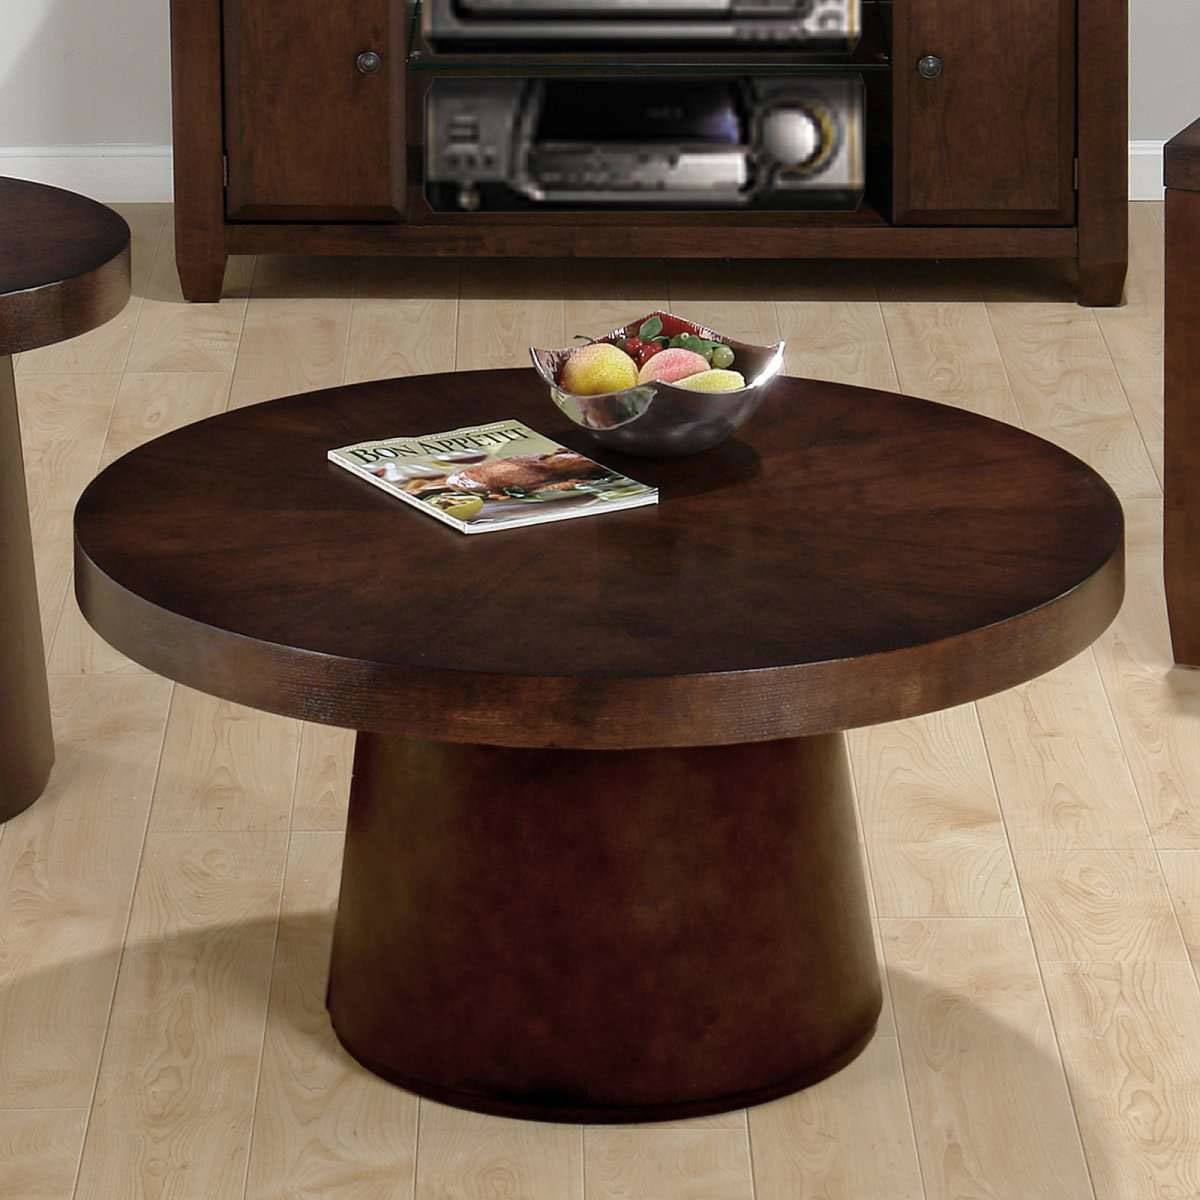 Cheap Coffee Table Ideas | Table And Chair And Door pertaining to Cheap Coffee Tables (Image 3 of 30)